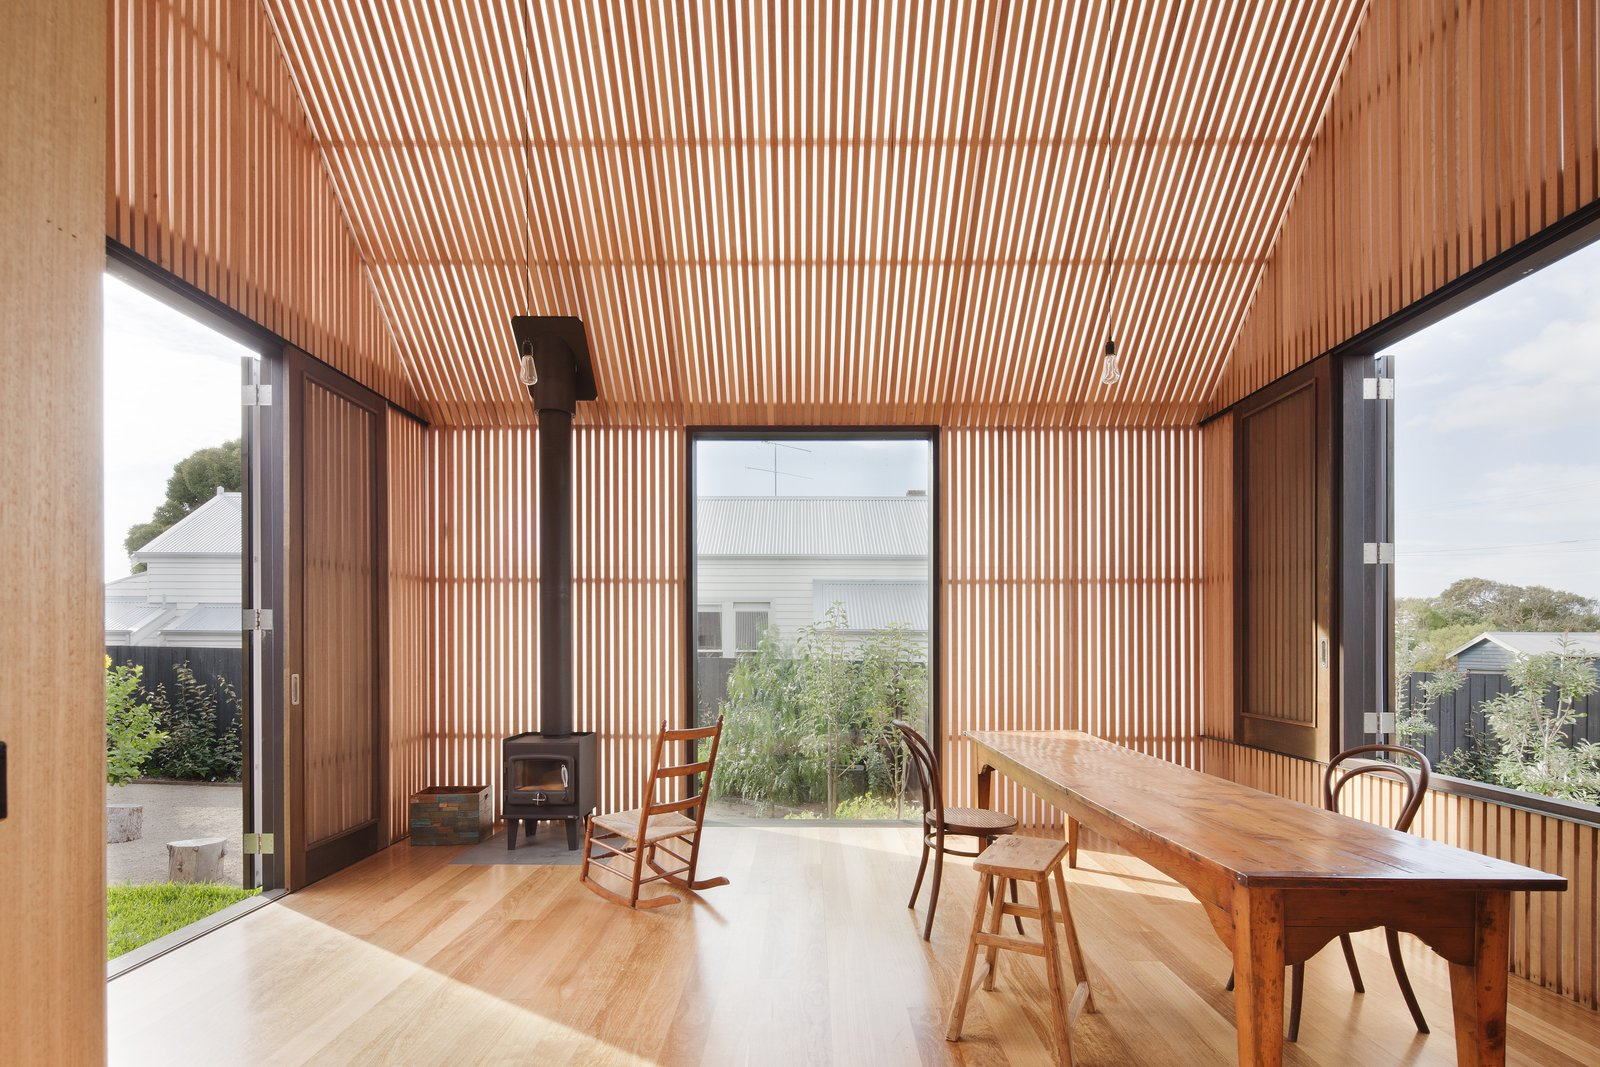 "Dining Room, Chair, Table, Wood Burning Fireplace, Medium Hardwood Floor, Pendant Lighting, and Stools The white polycarbonate structure functions as a more protected version of a porch. Timber battens provide shading and cross ventilation. ""In this case, the building is entirely clad in a triple skin, translucent polycarbonate cladding system with the inner skin entirely clad with timber battens,"" say the architects. ""This space provides cool, shaded, ventilated space in summer (doors open) and a warm, passively heated space in winter (doors closed).""  Photo 8 of 9 in Three Connected Pavilions Form This Airy Australian Beach Retreat"